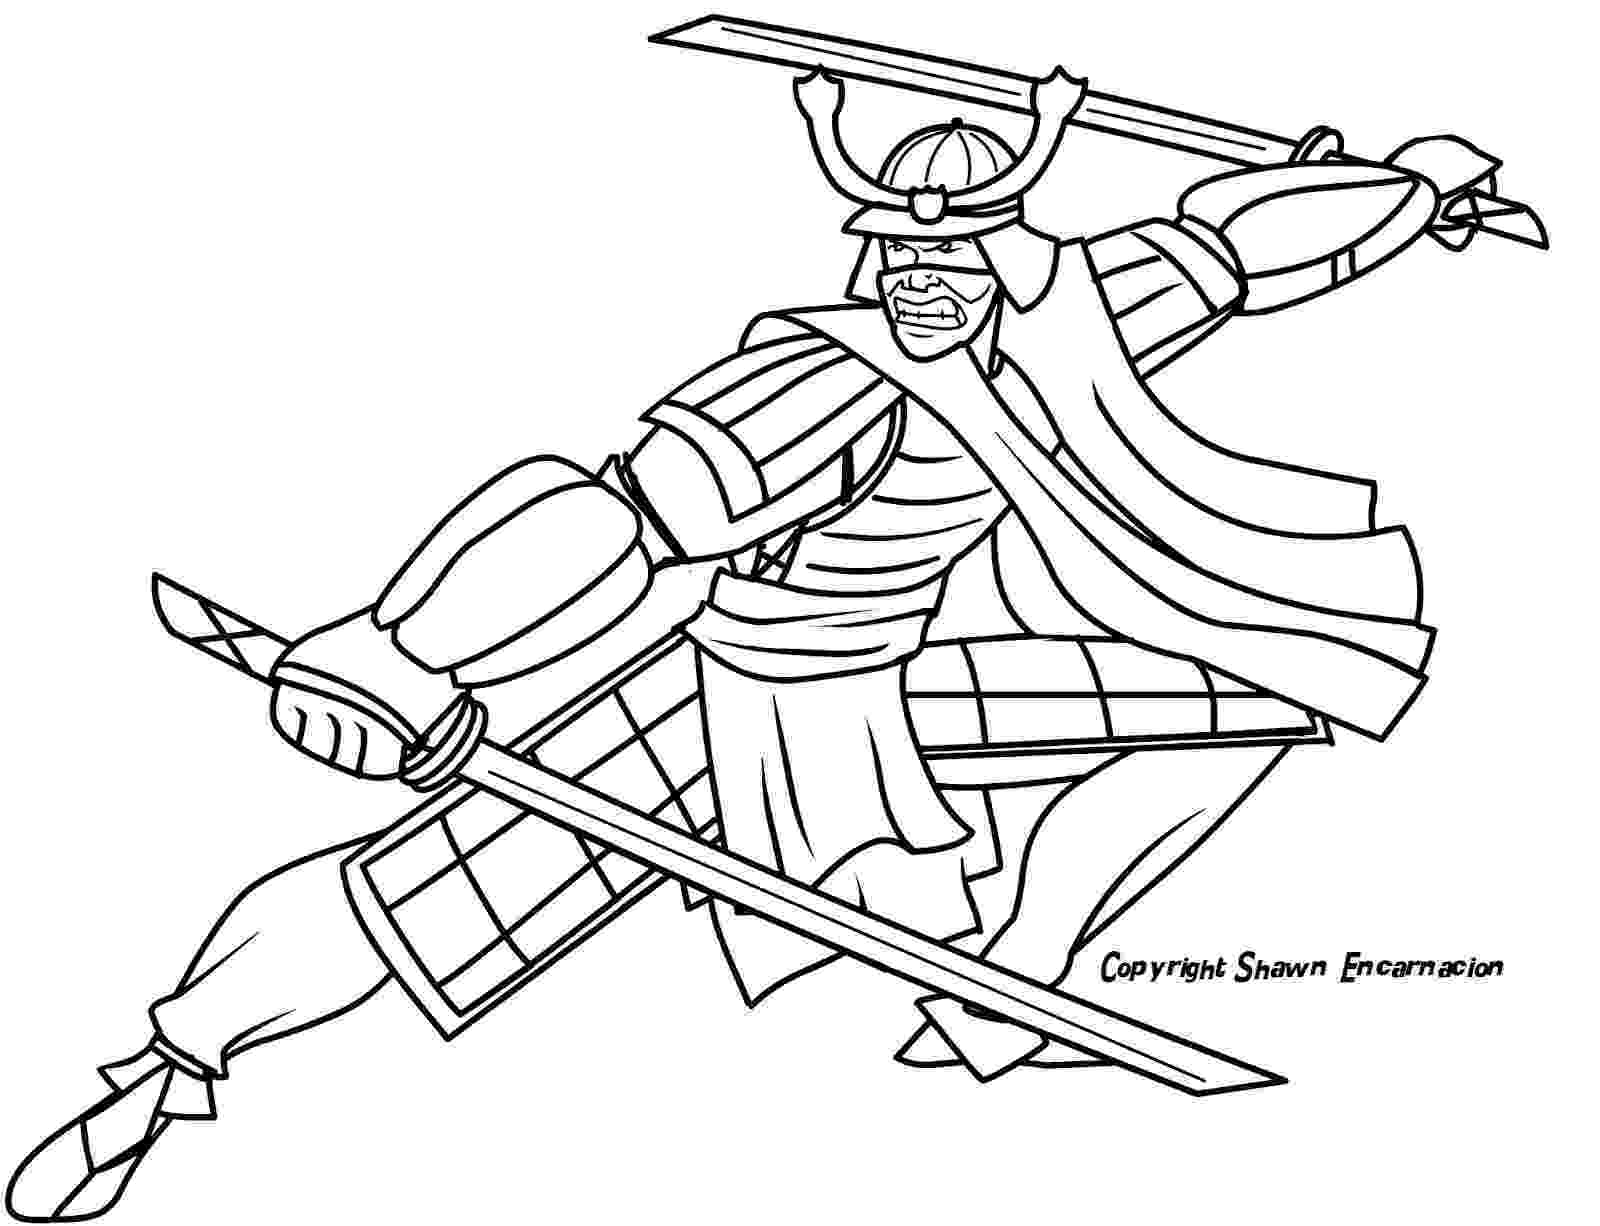 samurai coloring pages inkspired musings japan poems culture paperdolls and coloring samurai pages 1 1